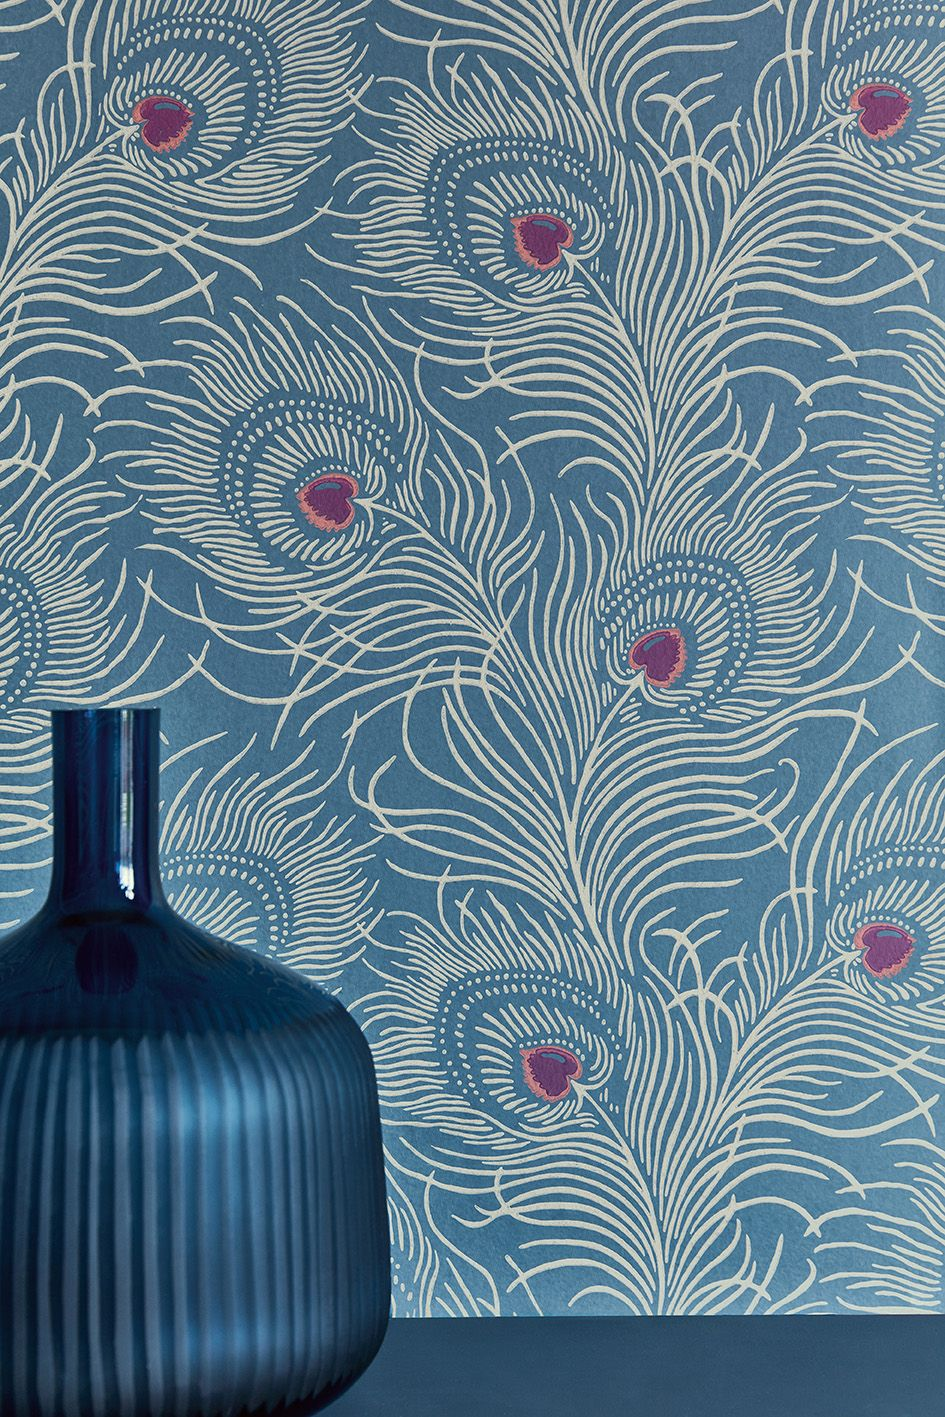 Wallpaper Carlton House Terrace Blue Plume Fireplace